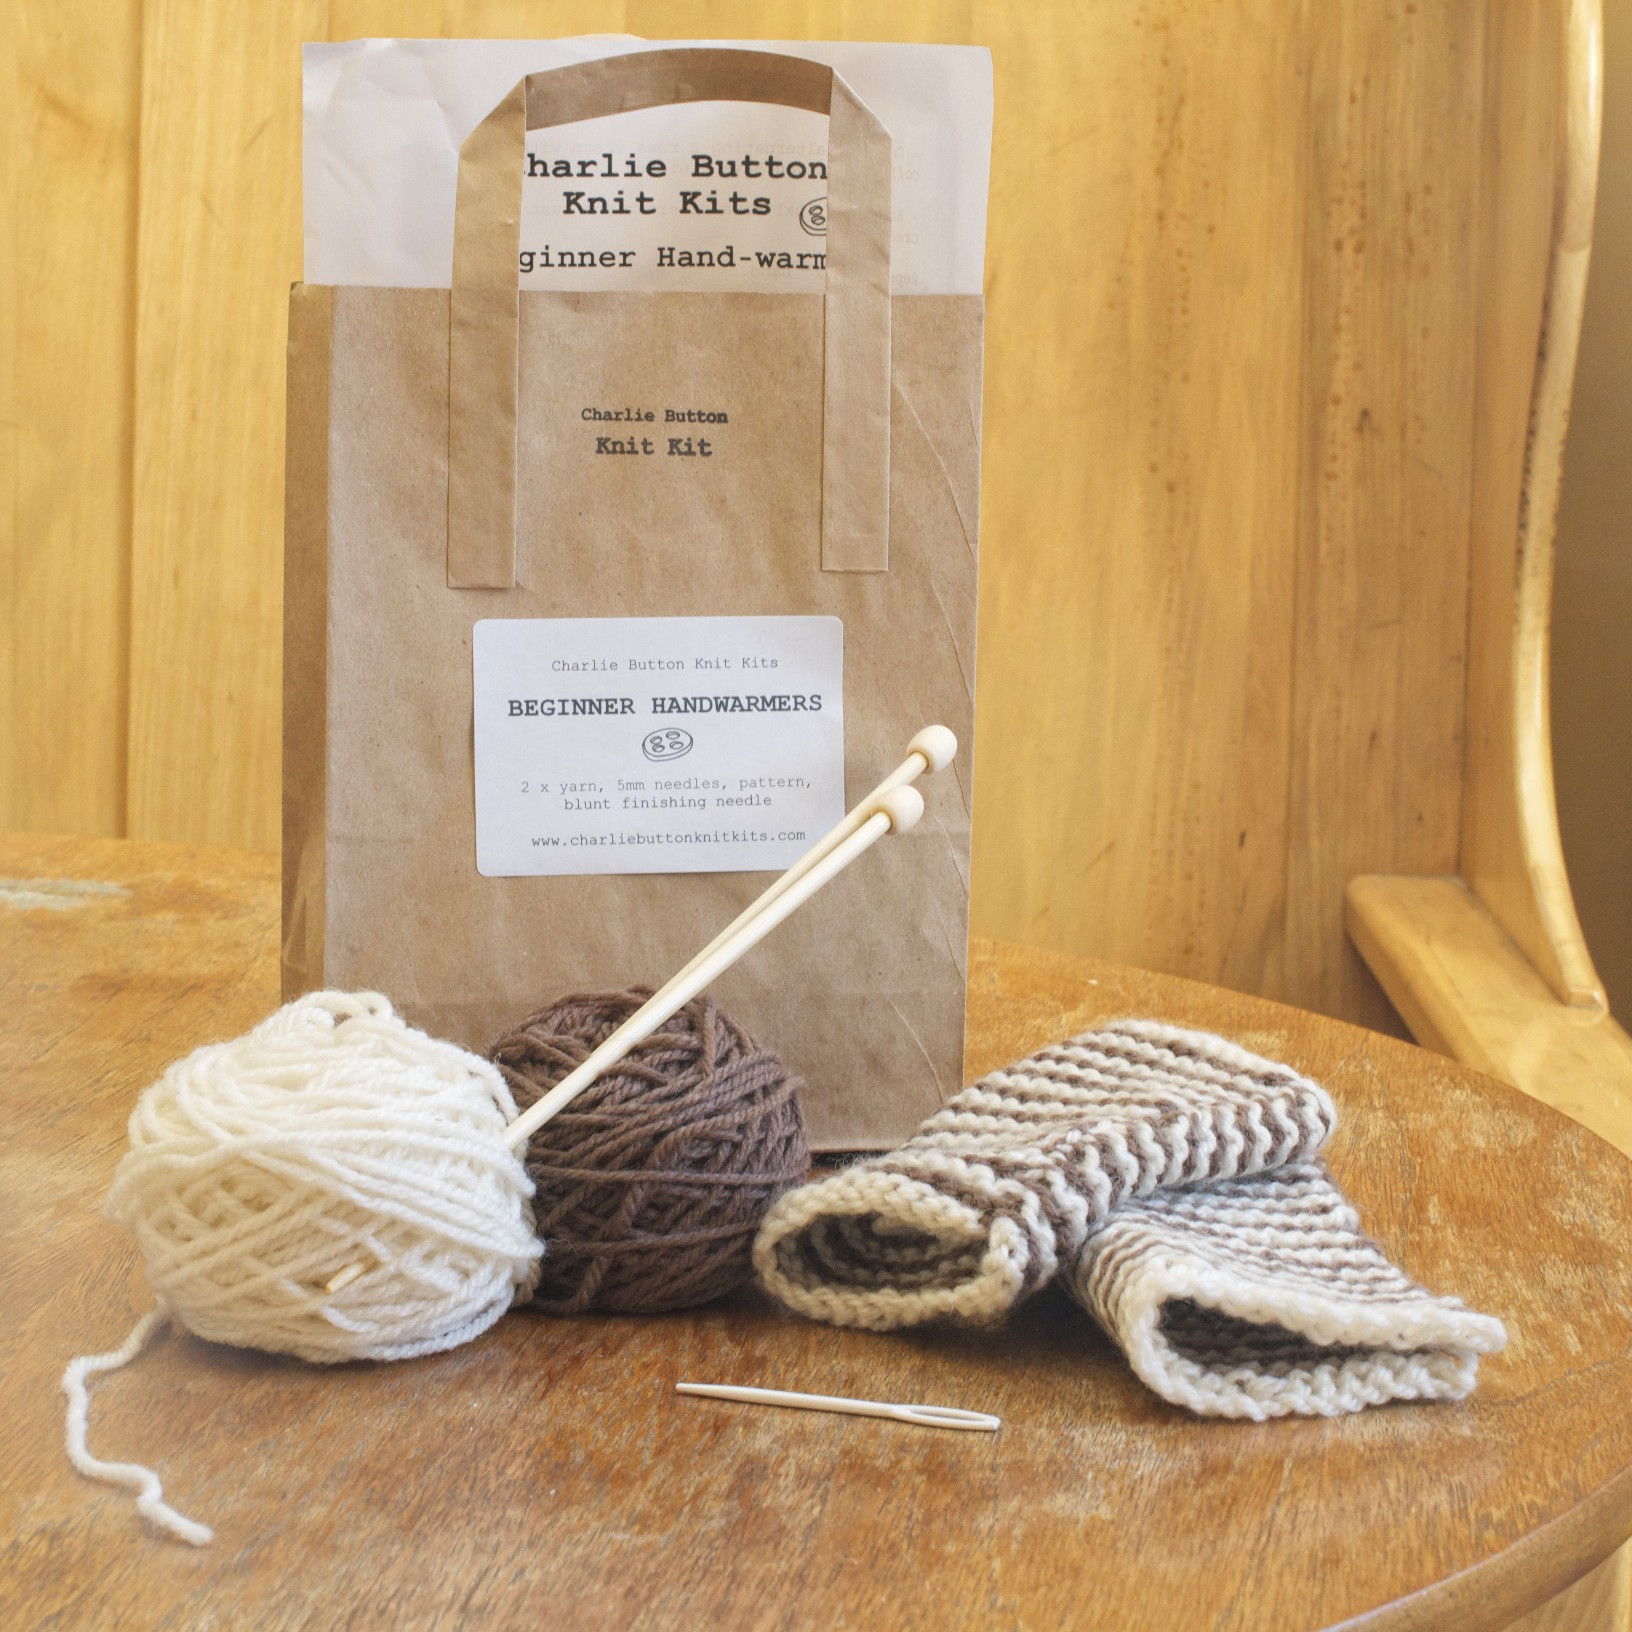 Knitting Kits Inspirational Beginner Knitting Kit Hand Warmers Cream and Coffee Of Perfect 44 Images Knitting Kits